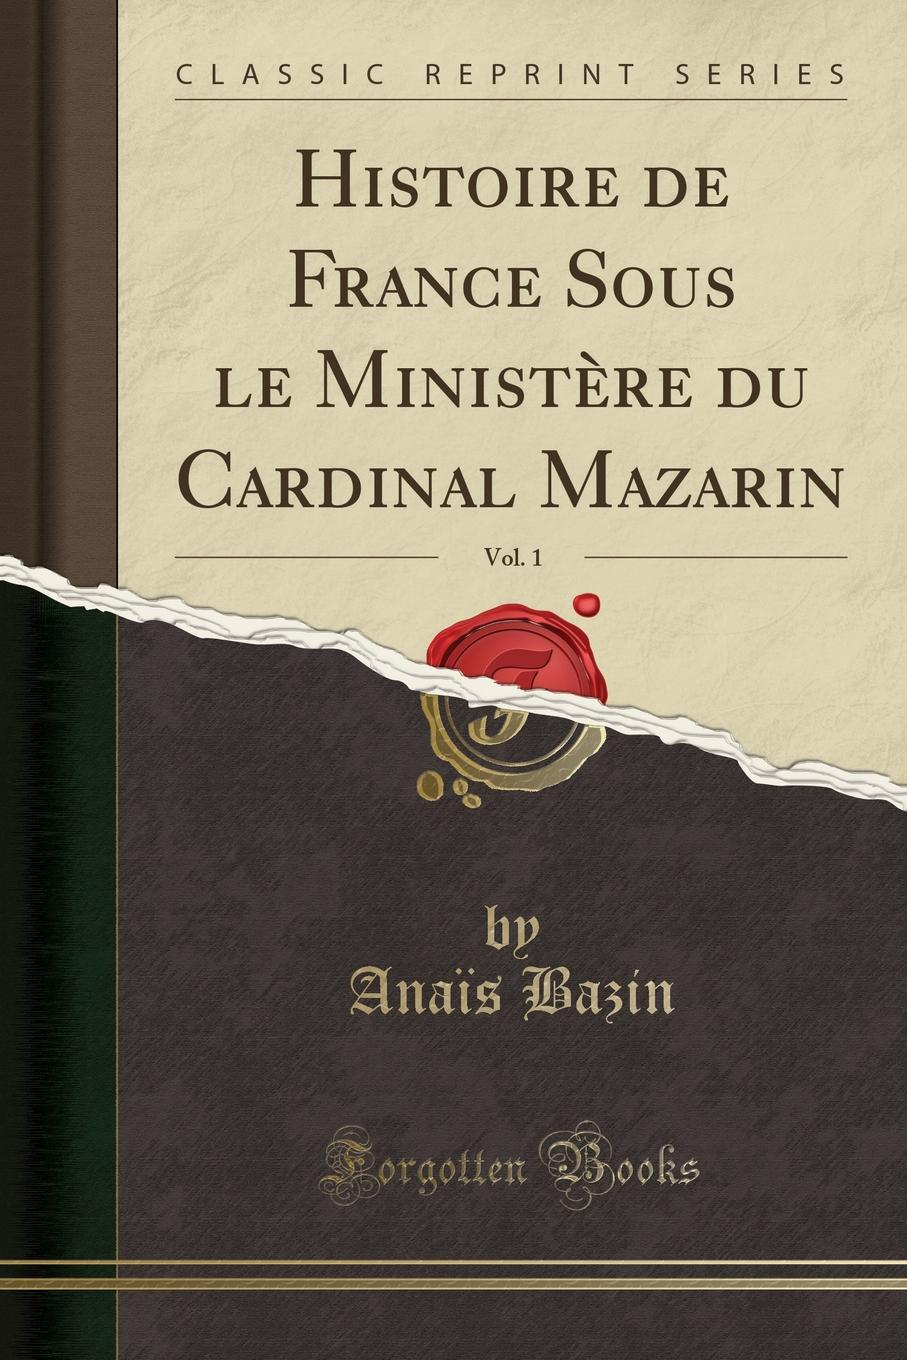 Anaïs Bazin Histoire de France Sous le Ministere du Cardinal Mazarin, Vol. 1 (Classic Reprint) cengage learning gale a study guide for nathaniel hawthorne s my kinsman major molineux